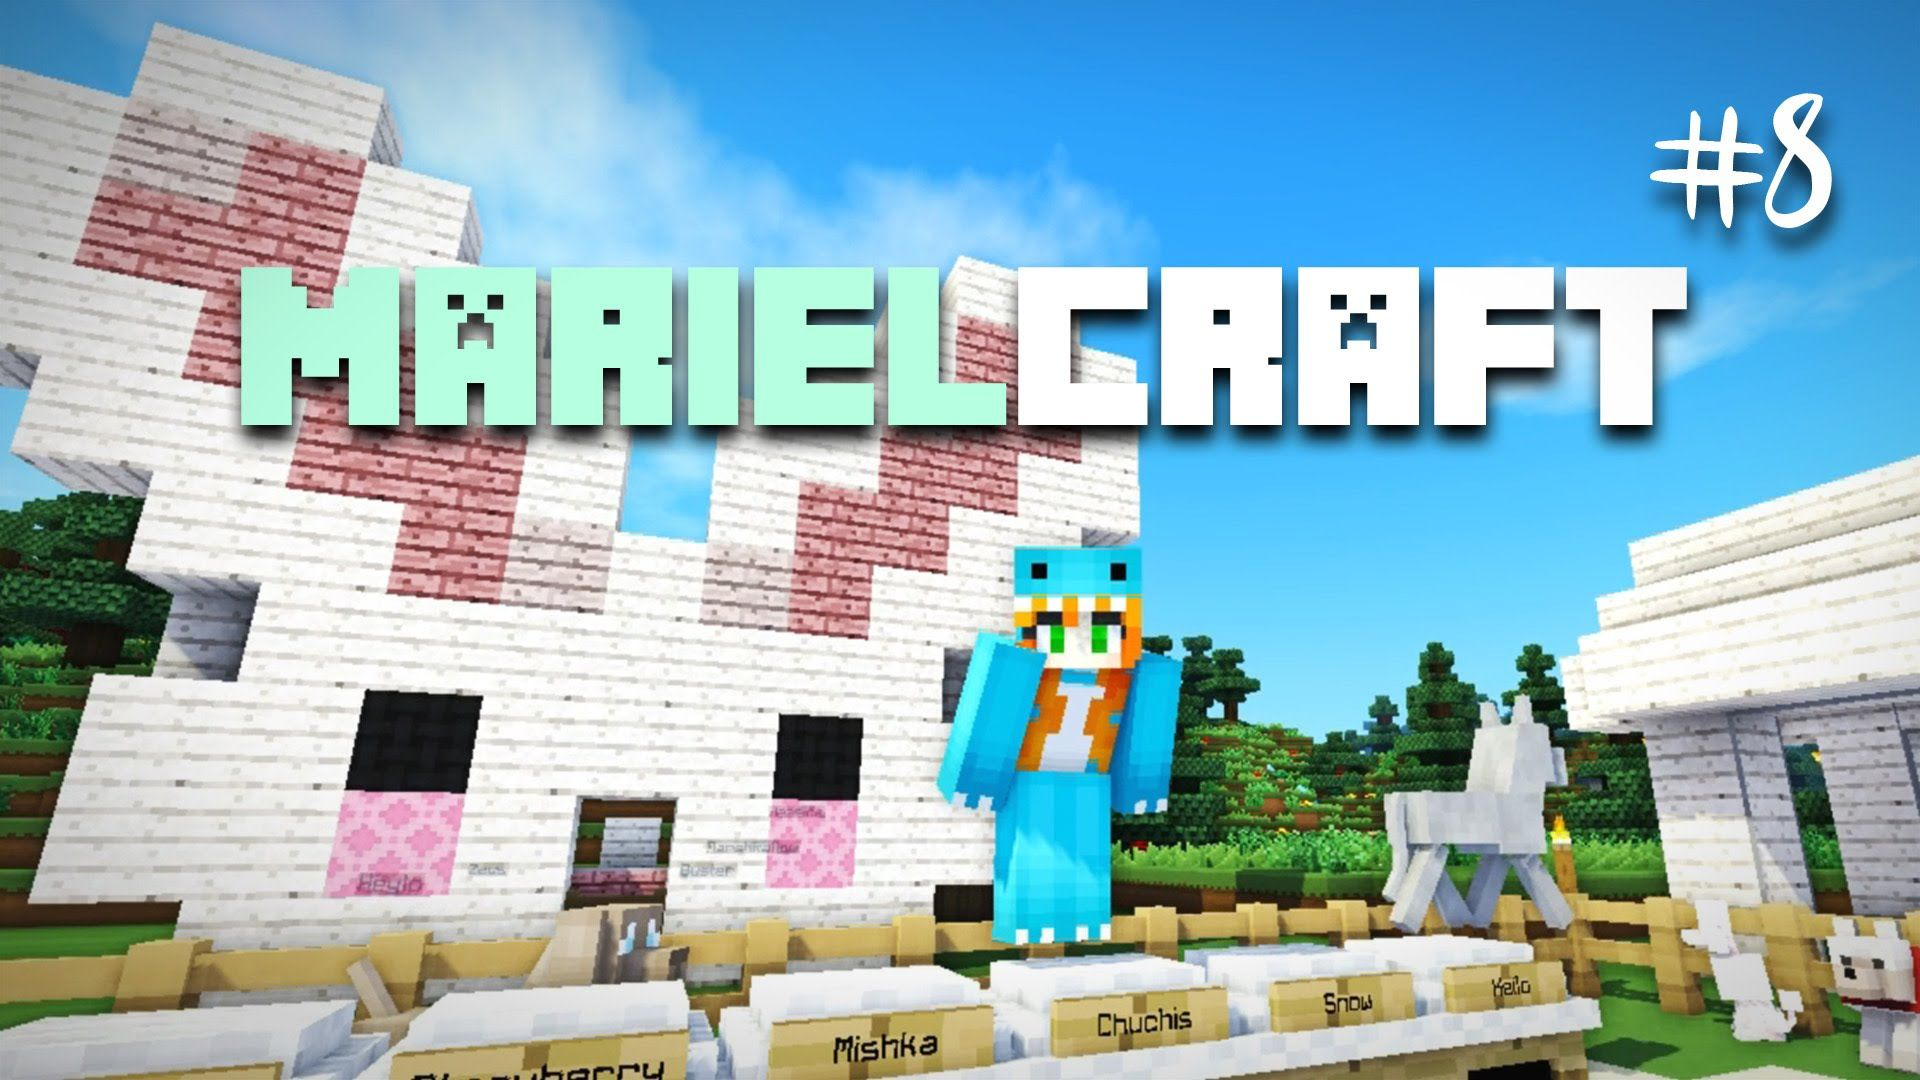 Cute Girl Minecraft Wallpapers Top Free Cute Girl Minecraft